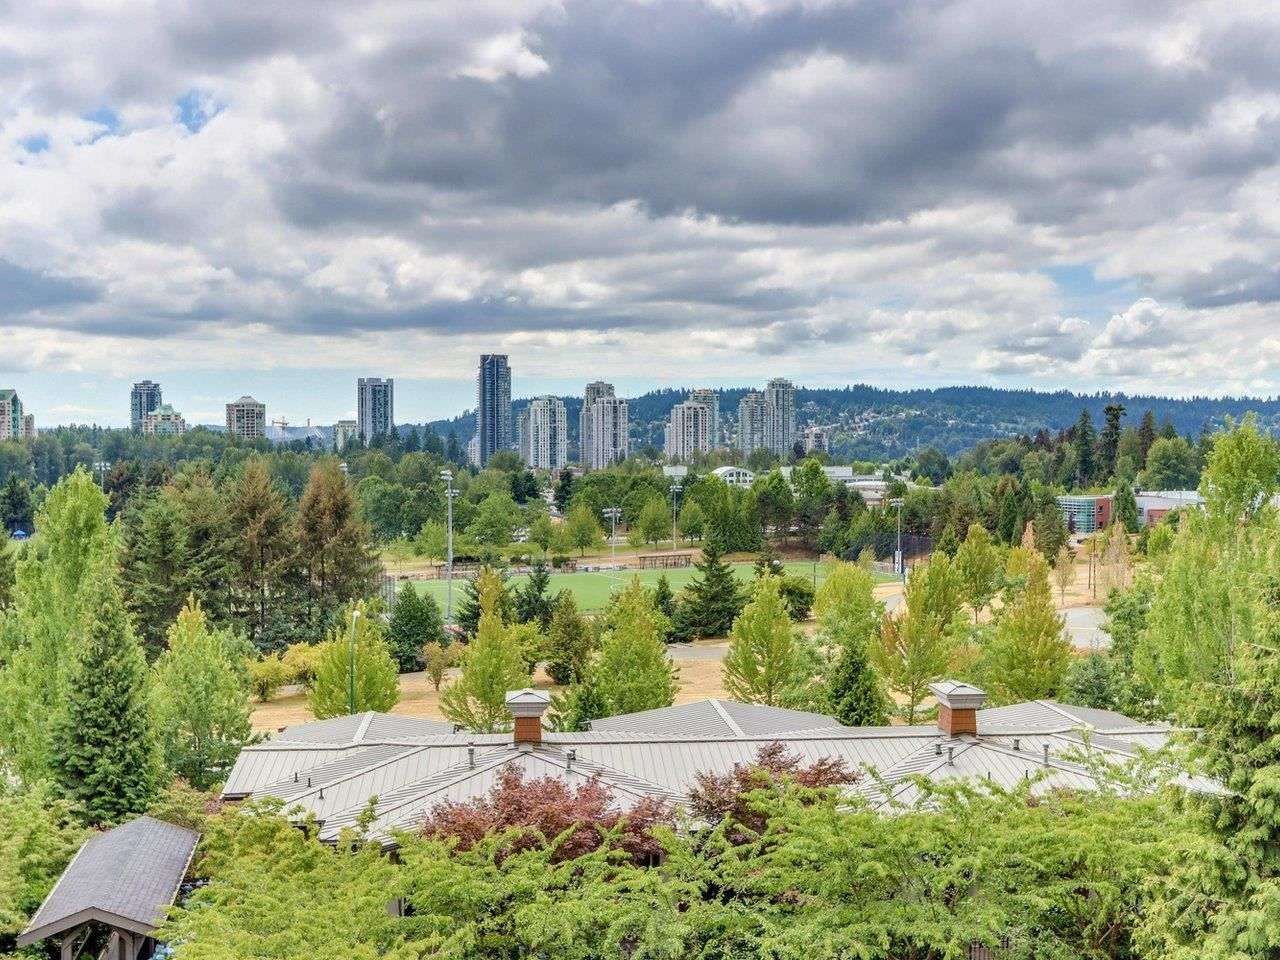 """Main Photo: 317 3082 DAYANEE SPRINGS Boulevard in Coquitlam: Westwood Plateau Condo for sale in """"The Lanterns"""" : MLS®# R2616558"""